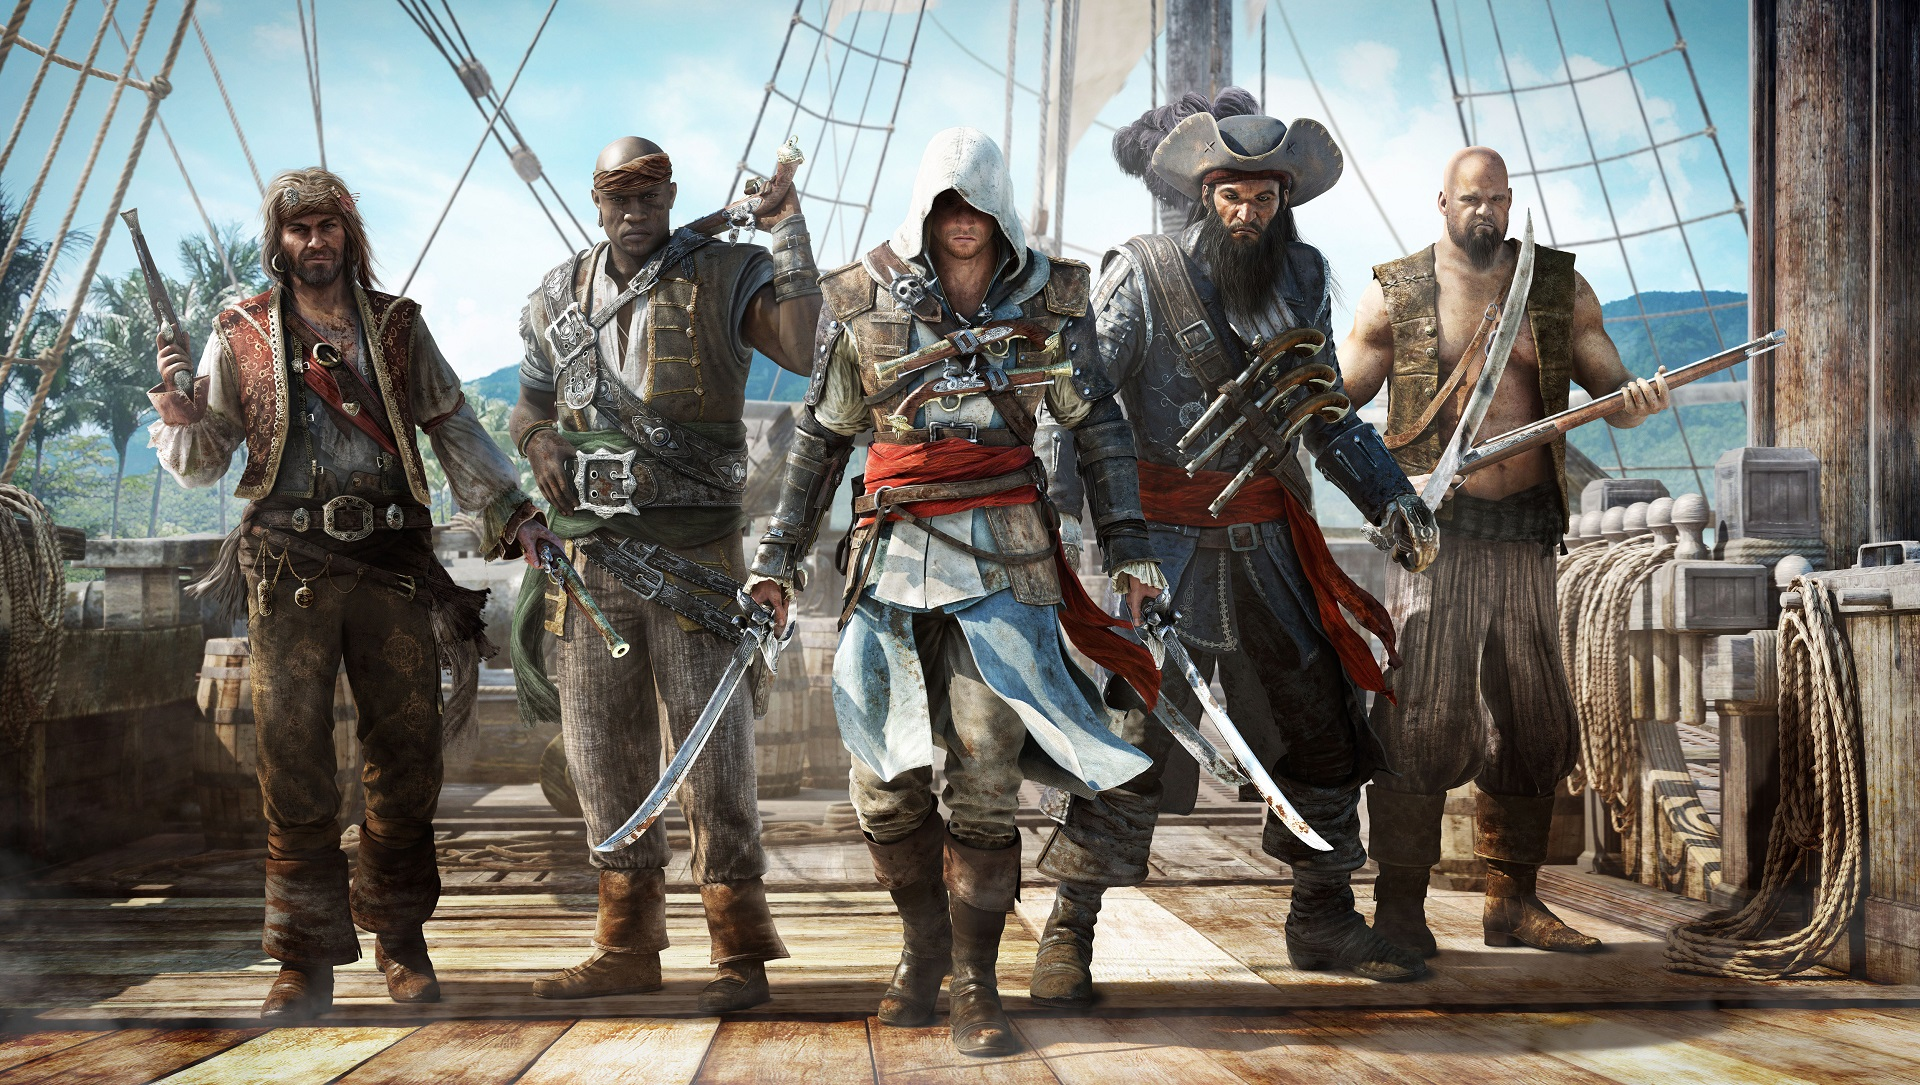 Assassin's Creed players are gathering to resuscitate the long-dead multiplayer screenshot